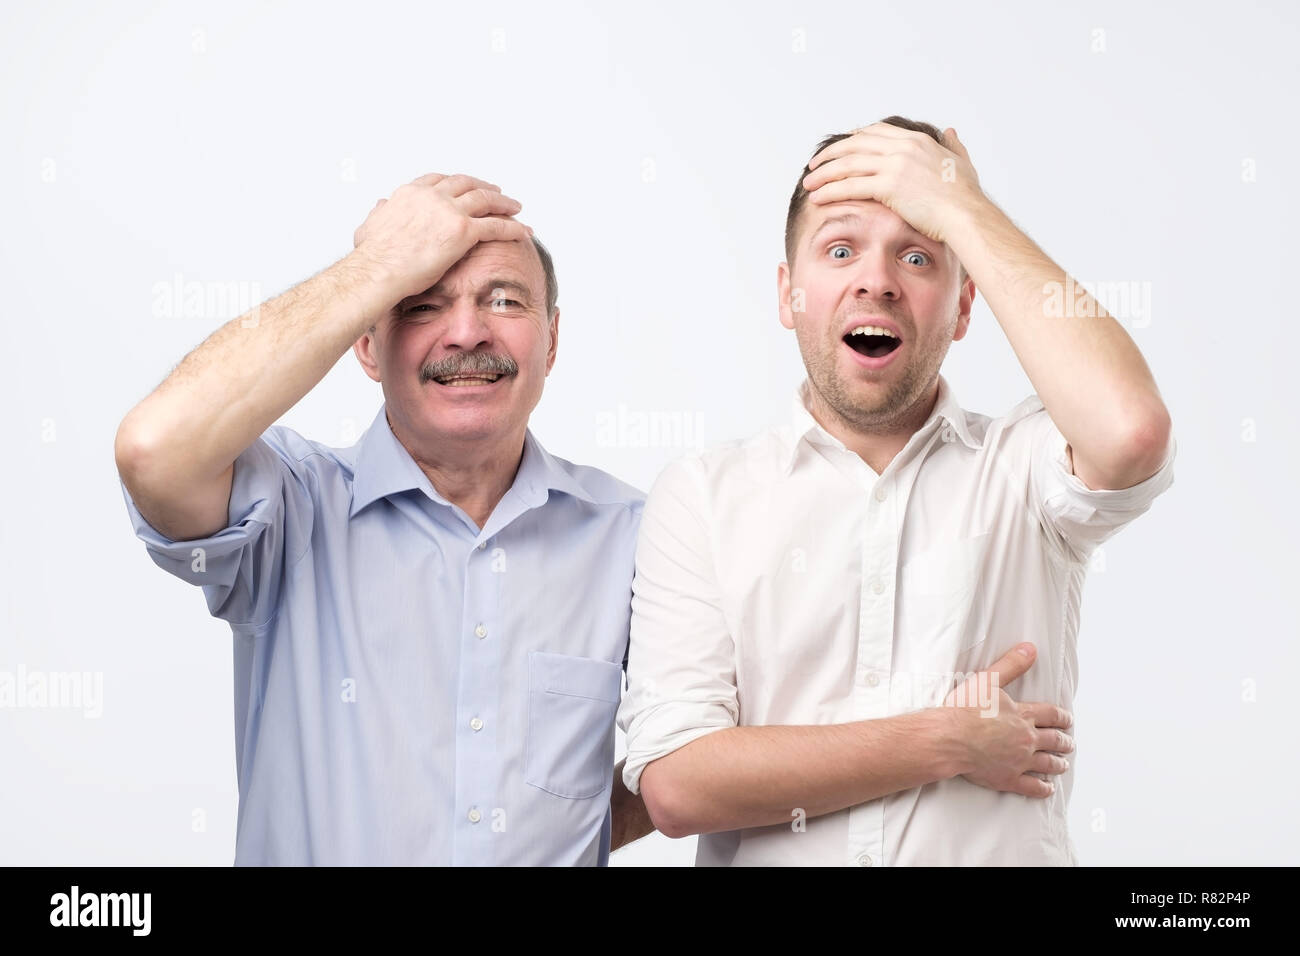 Stunned emotive two men keep jaw dropped, holding hand on head, wonder seasonal discounts and prices - Stock Image